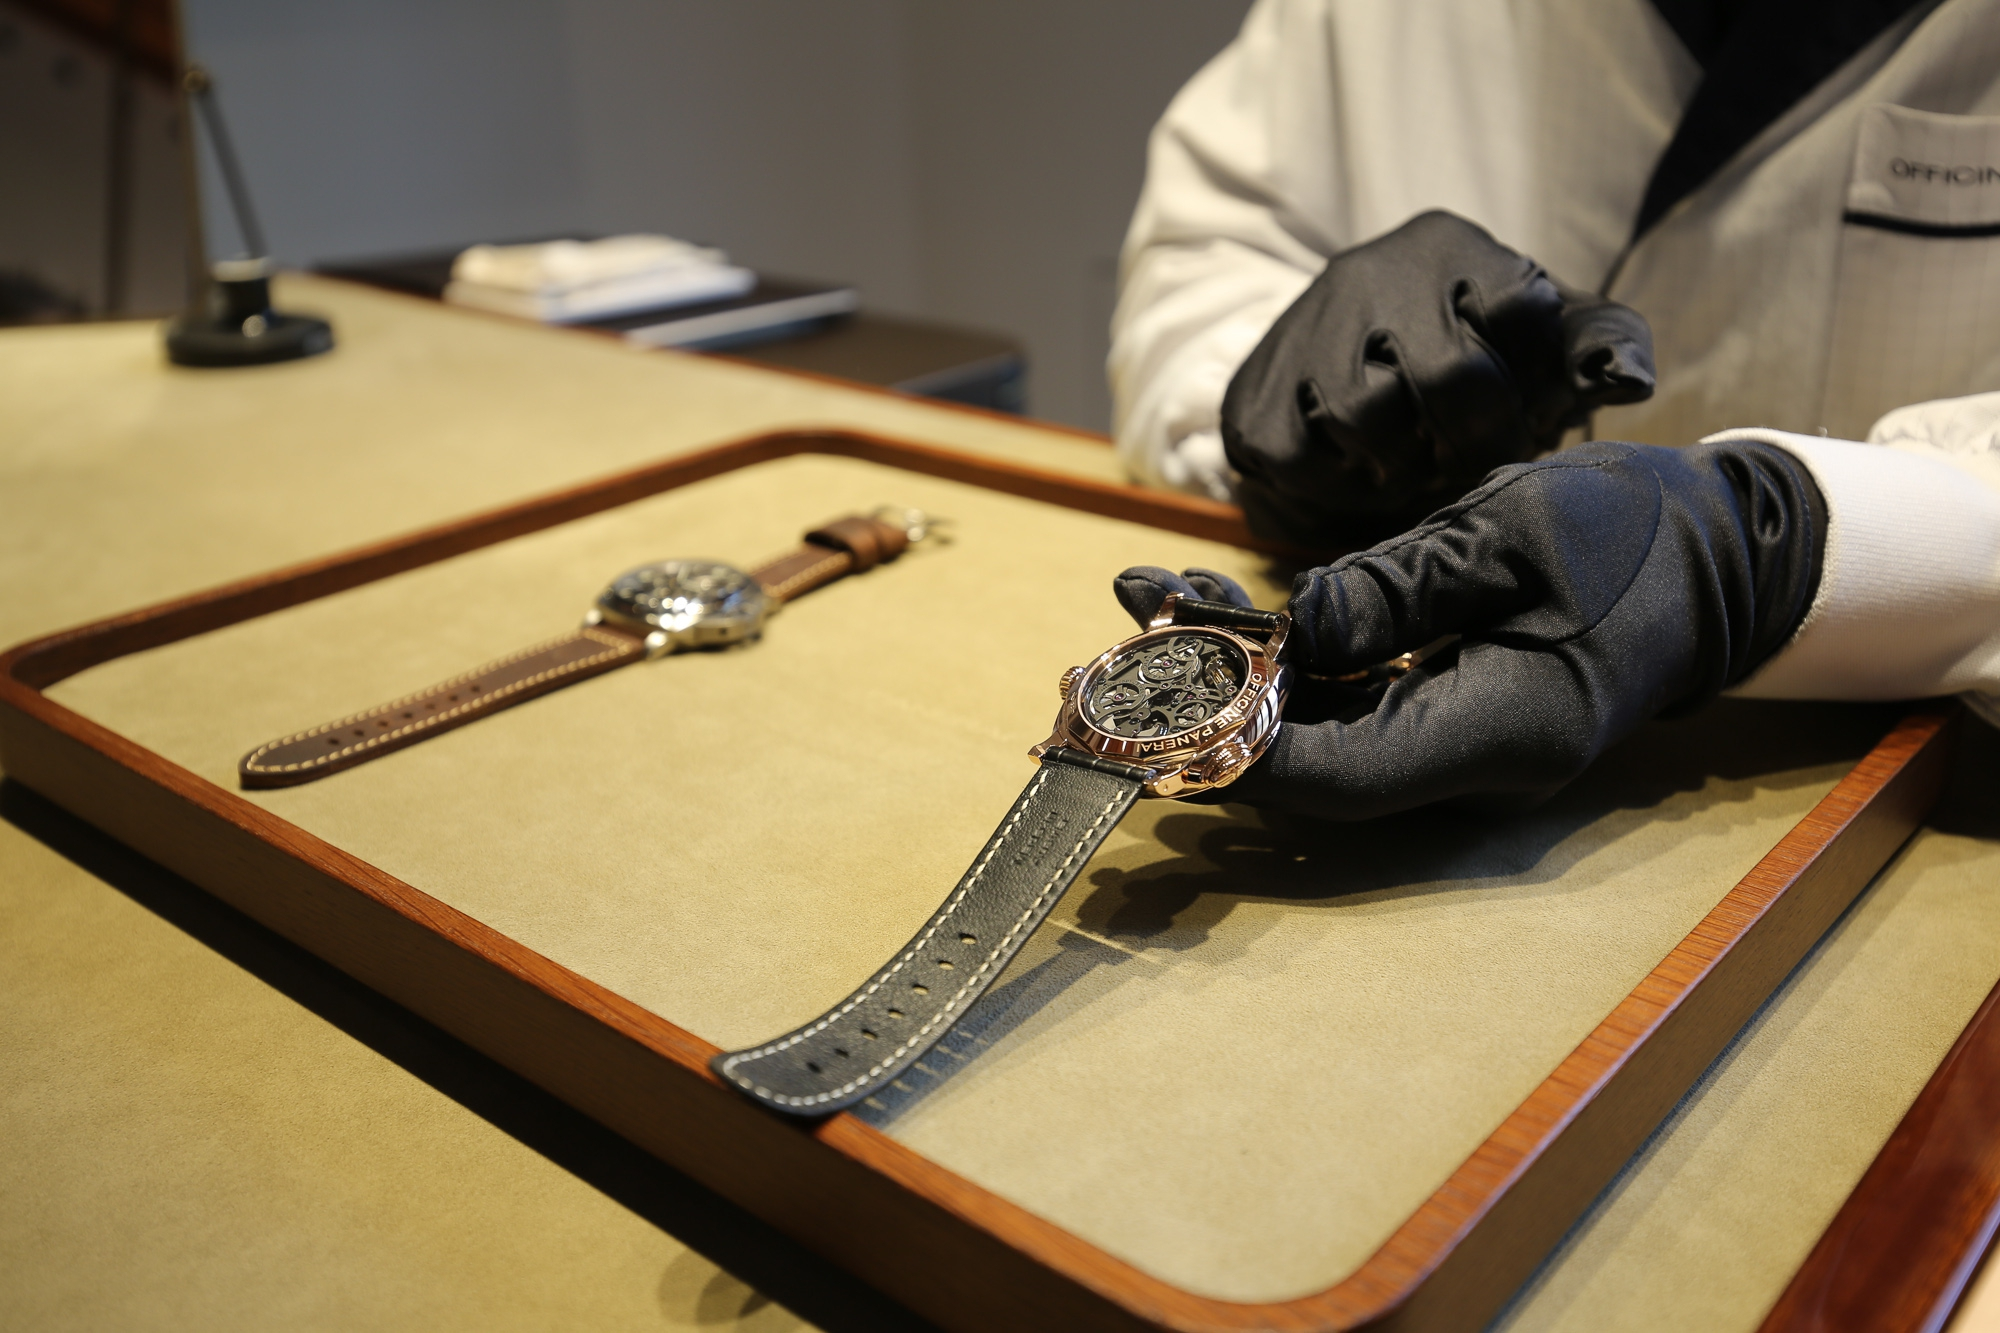 Officine Panerai Diving into the history of an Italian watchmaking excellence